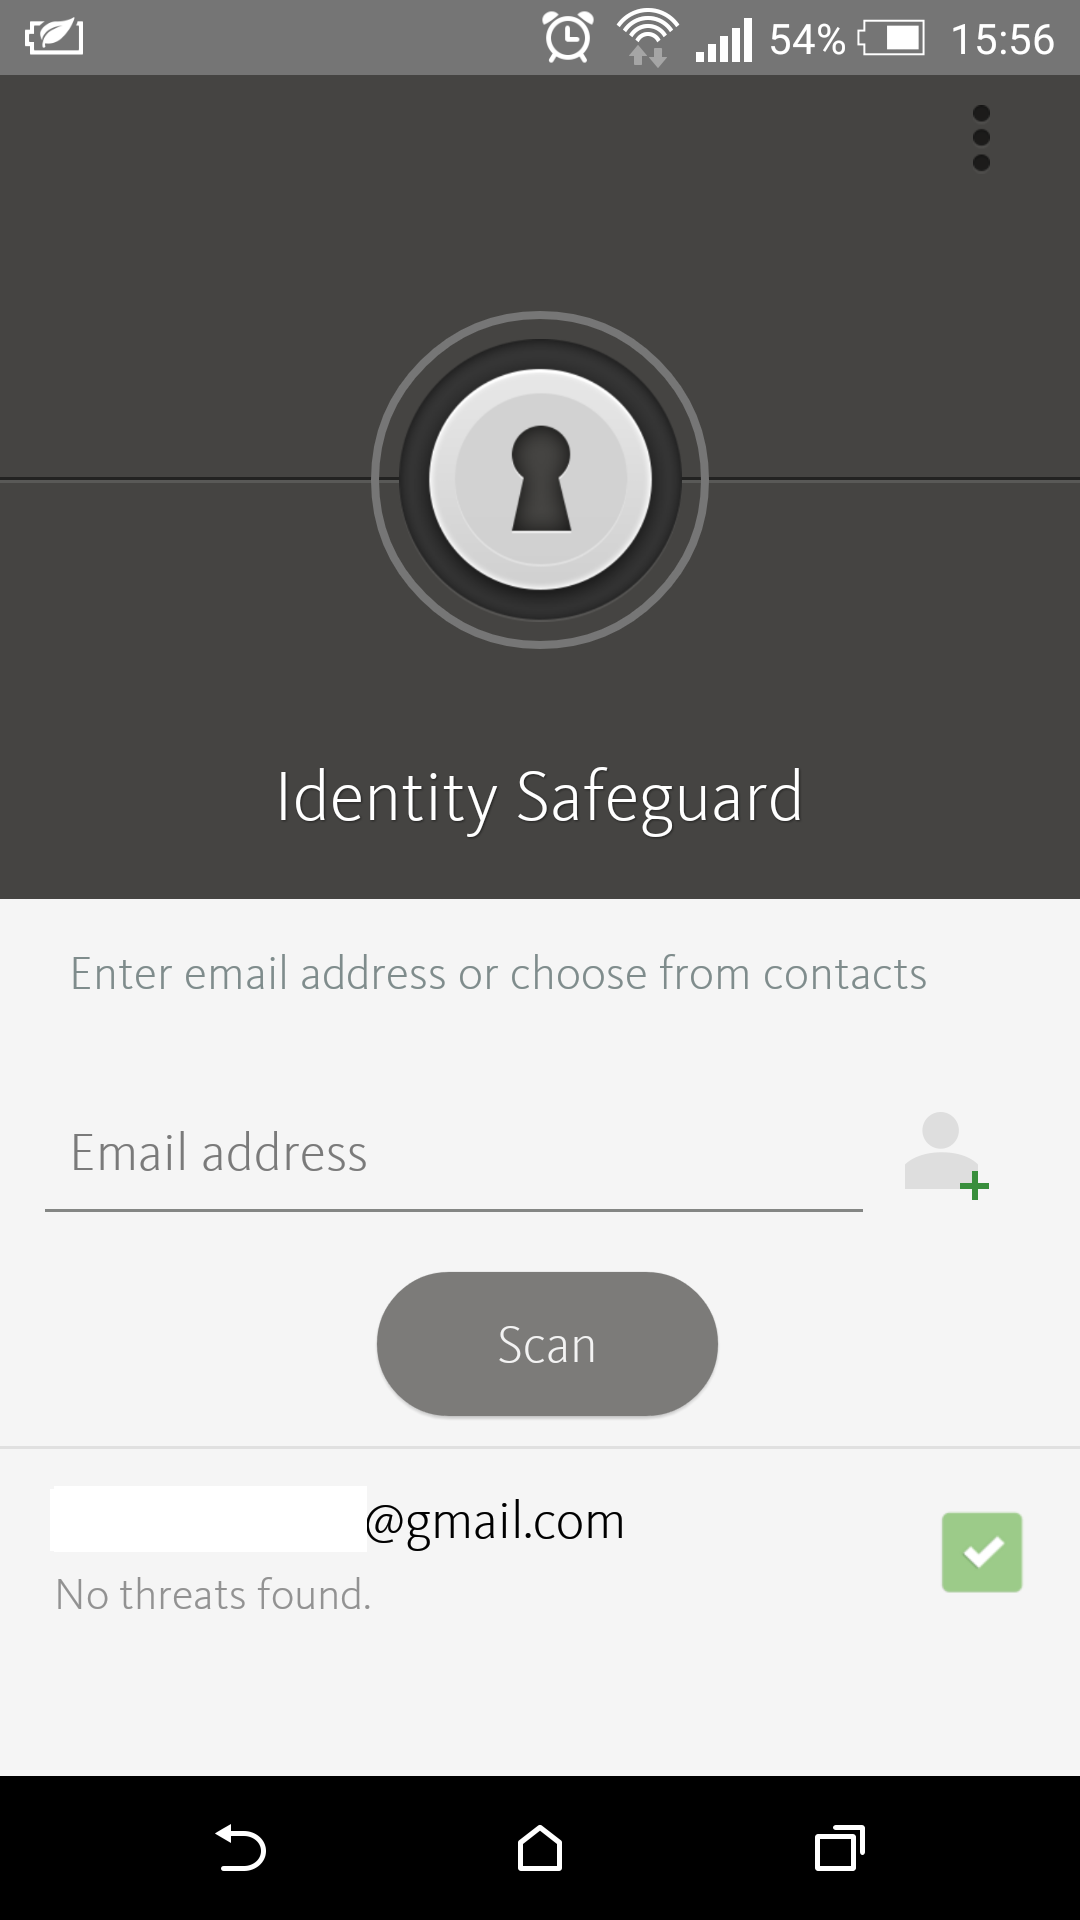 Identity Safeguard